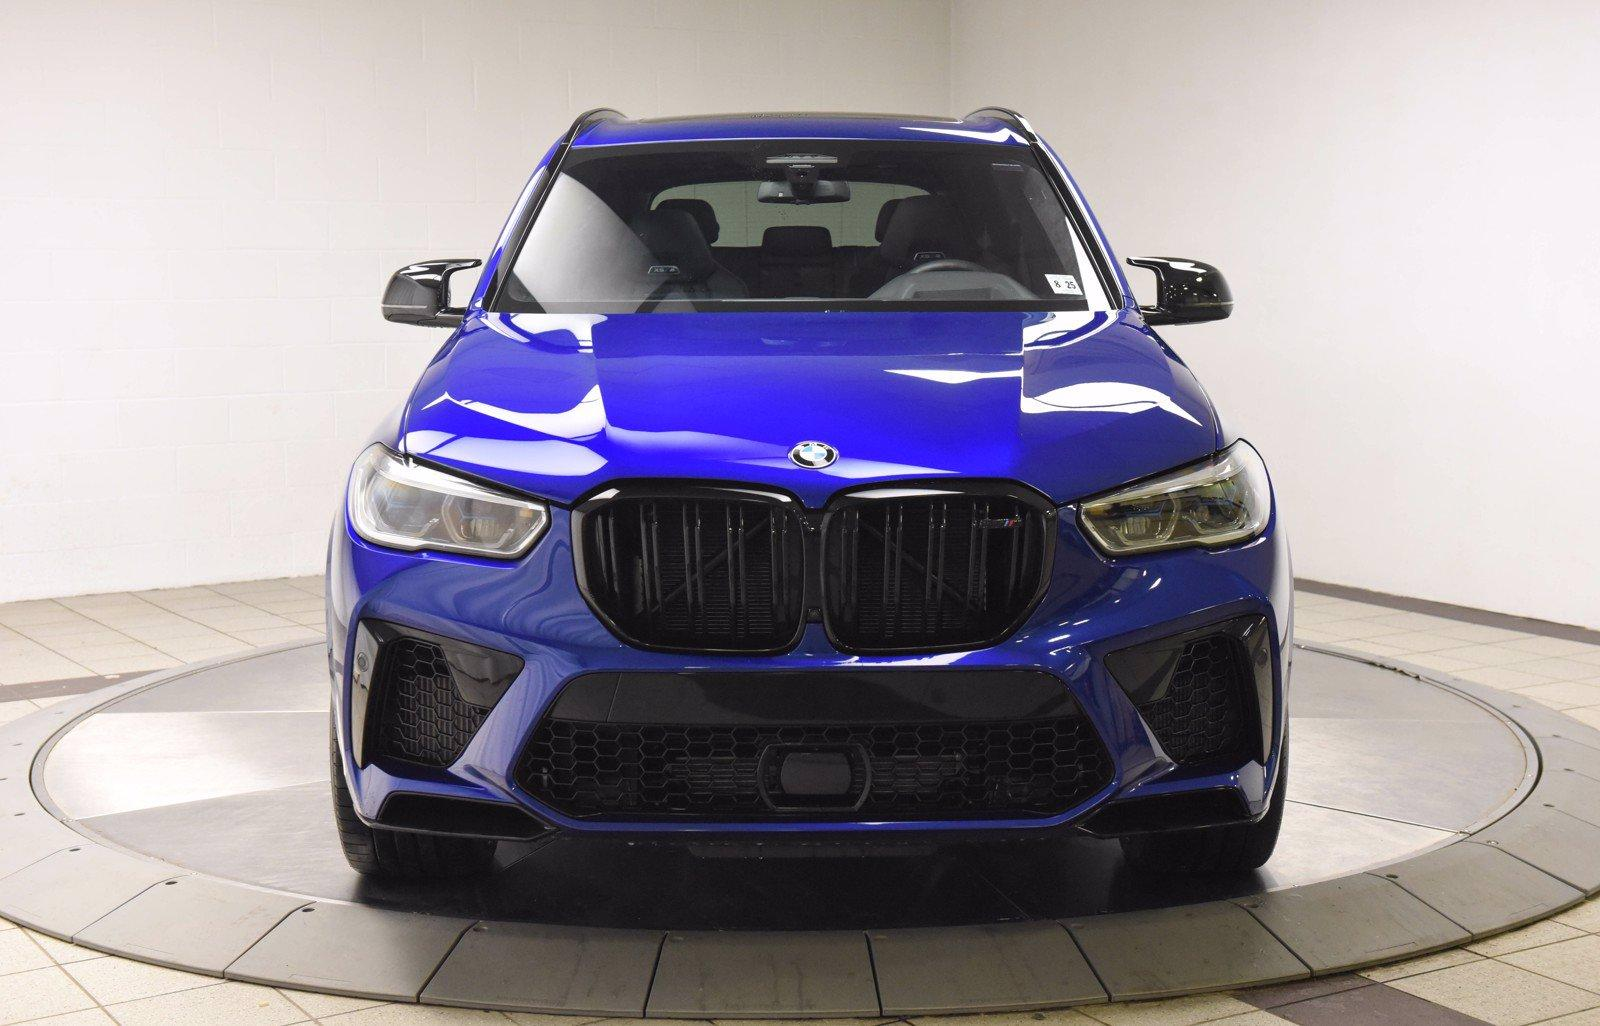 Used 2020 Bmw X5 M Competition For Sale 111 500 Ferrari Of Central New Jersey Stock B9d25699t